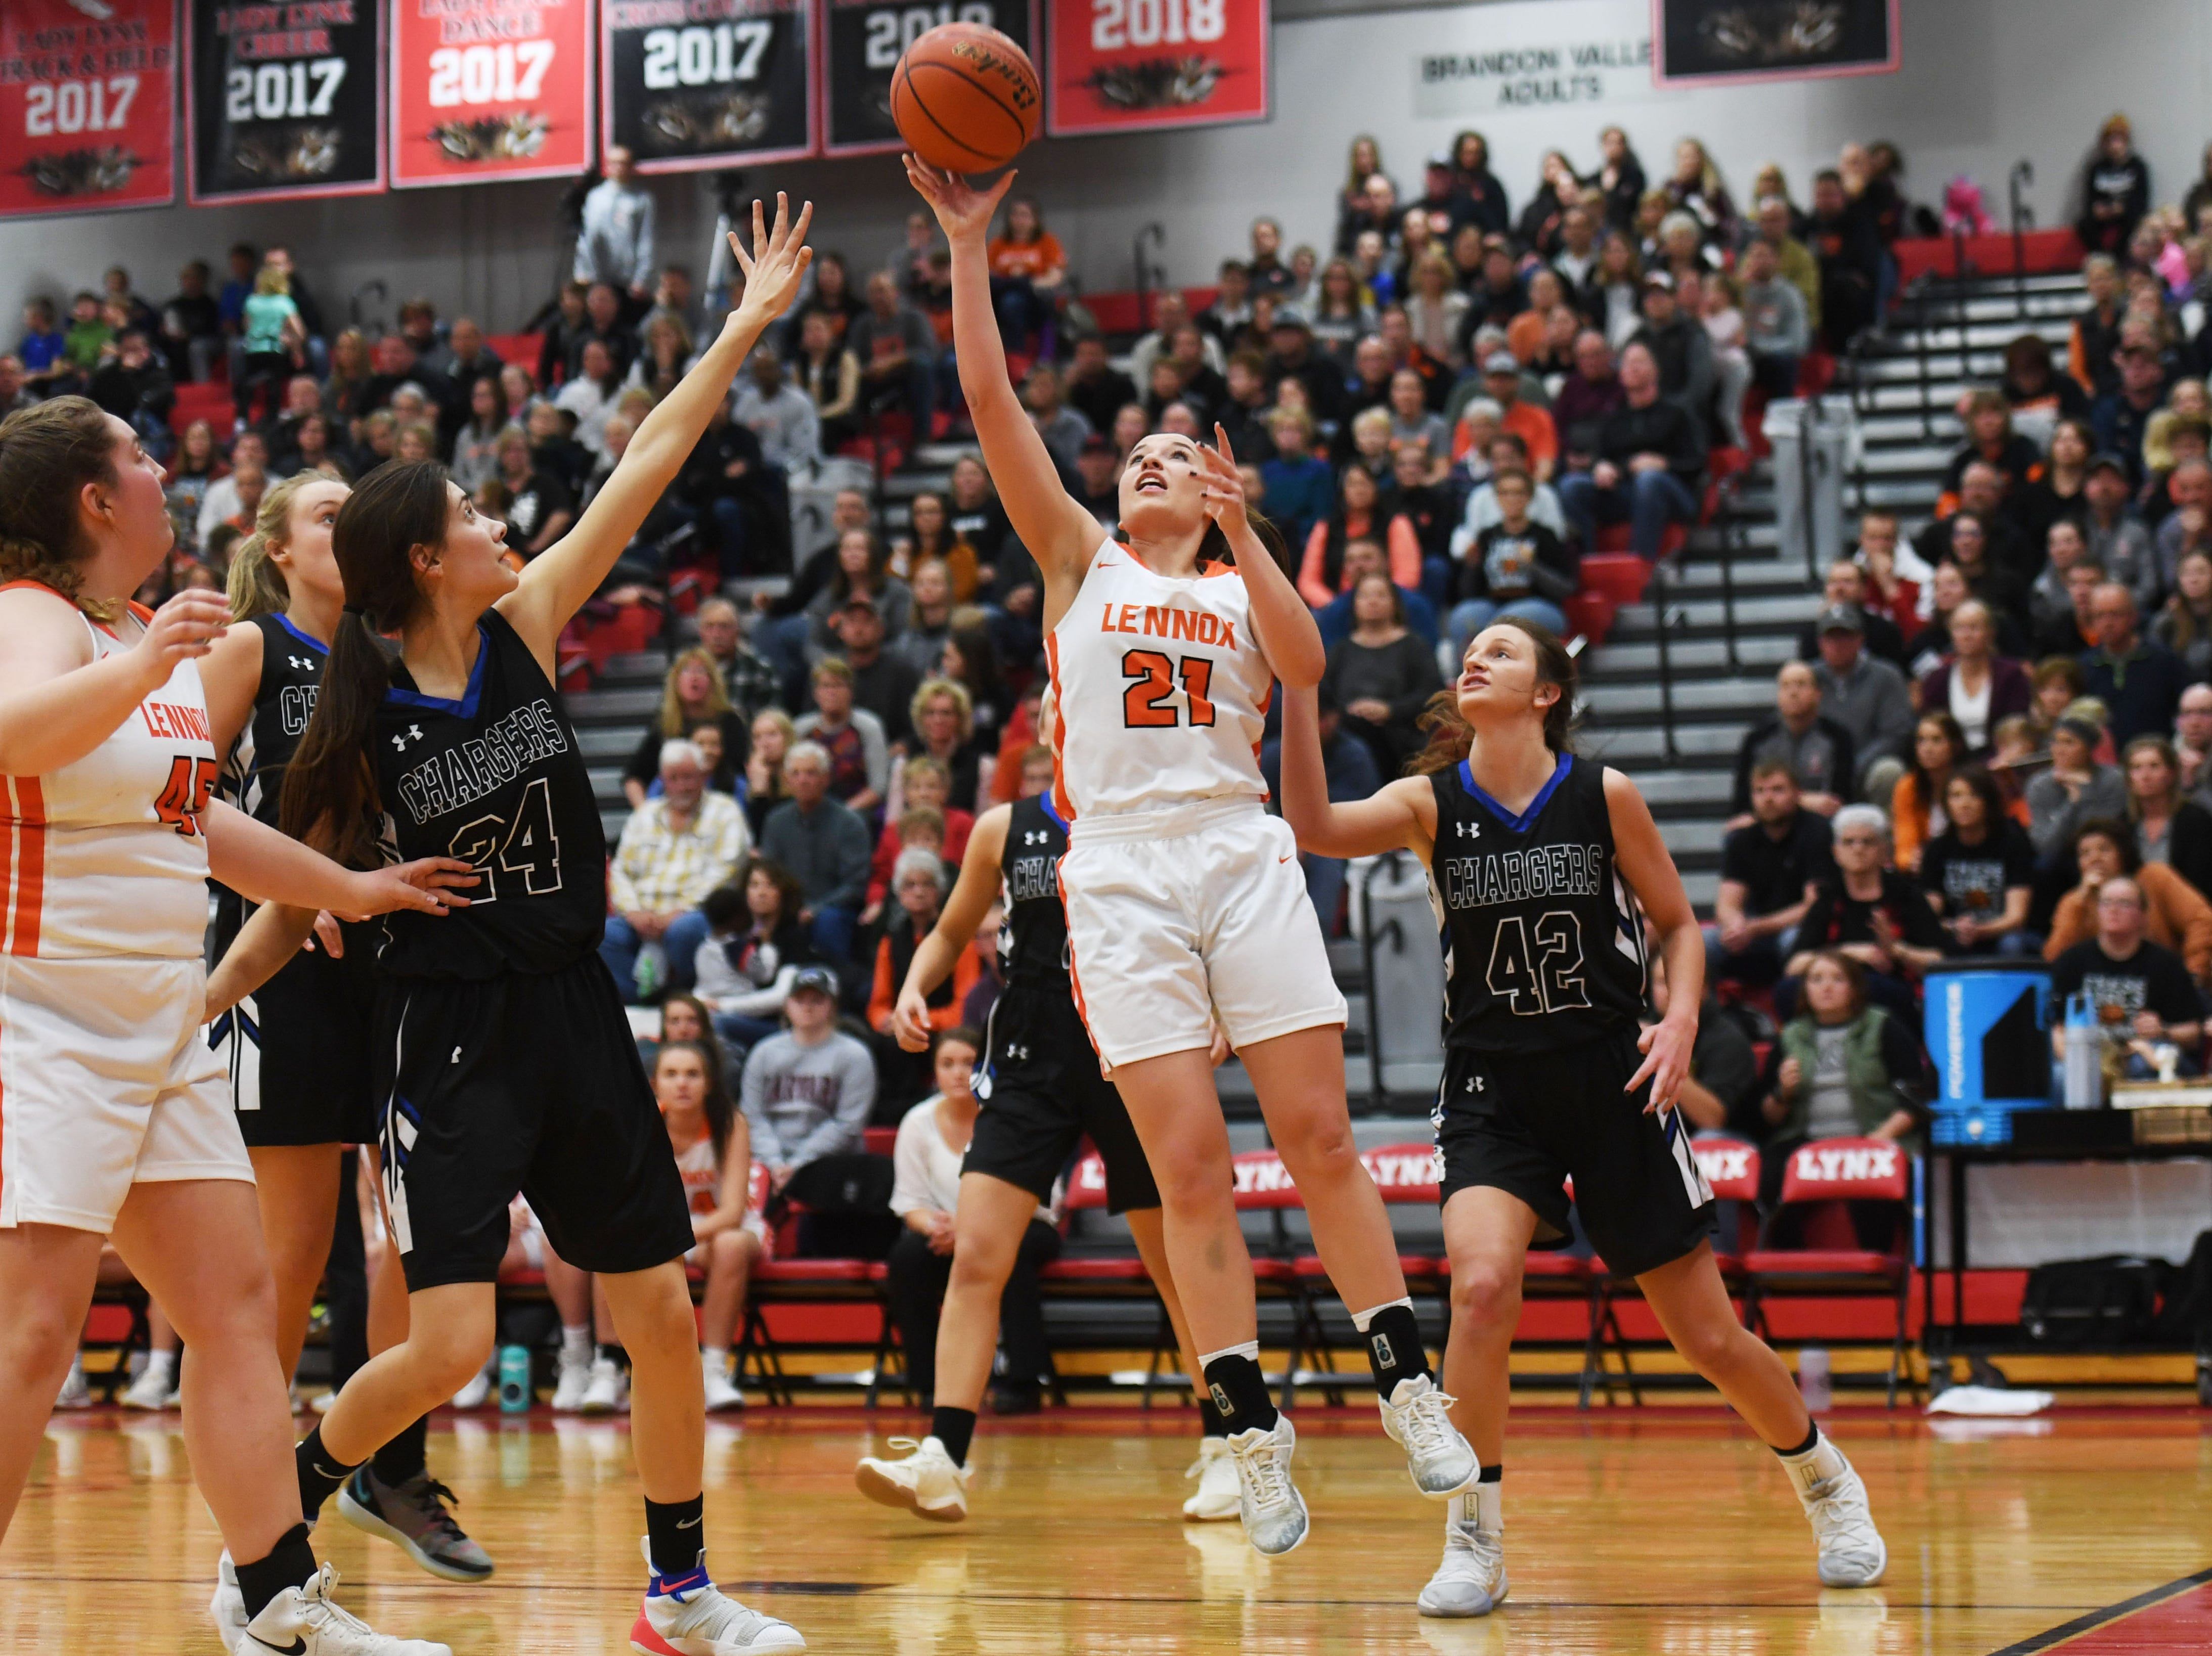 Lennox's Riley Peters takes a shot against Sioux Falls Christian during the game Thursday, March 7, at Brandon Valley High School in Brandon Valley.